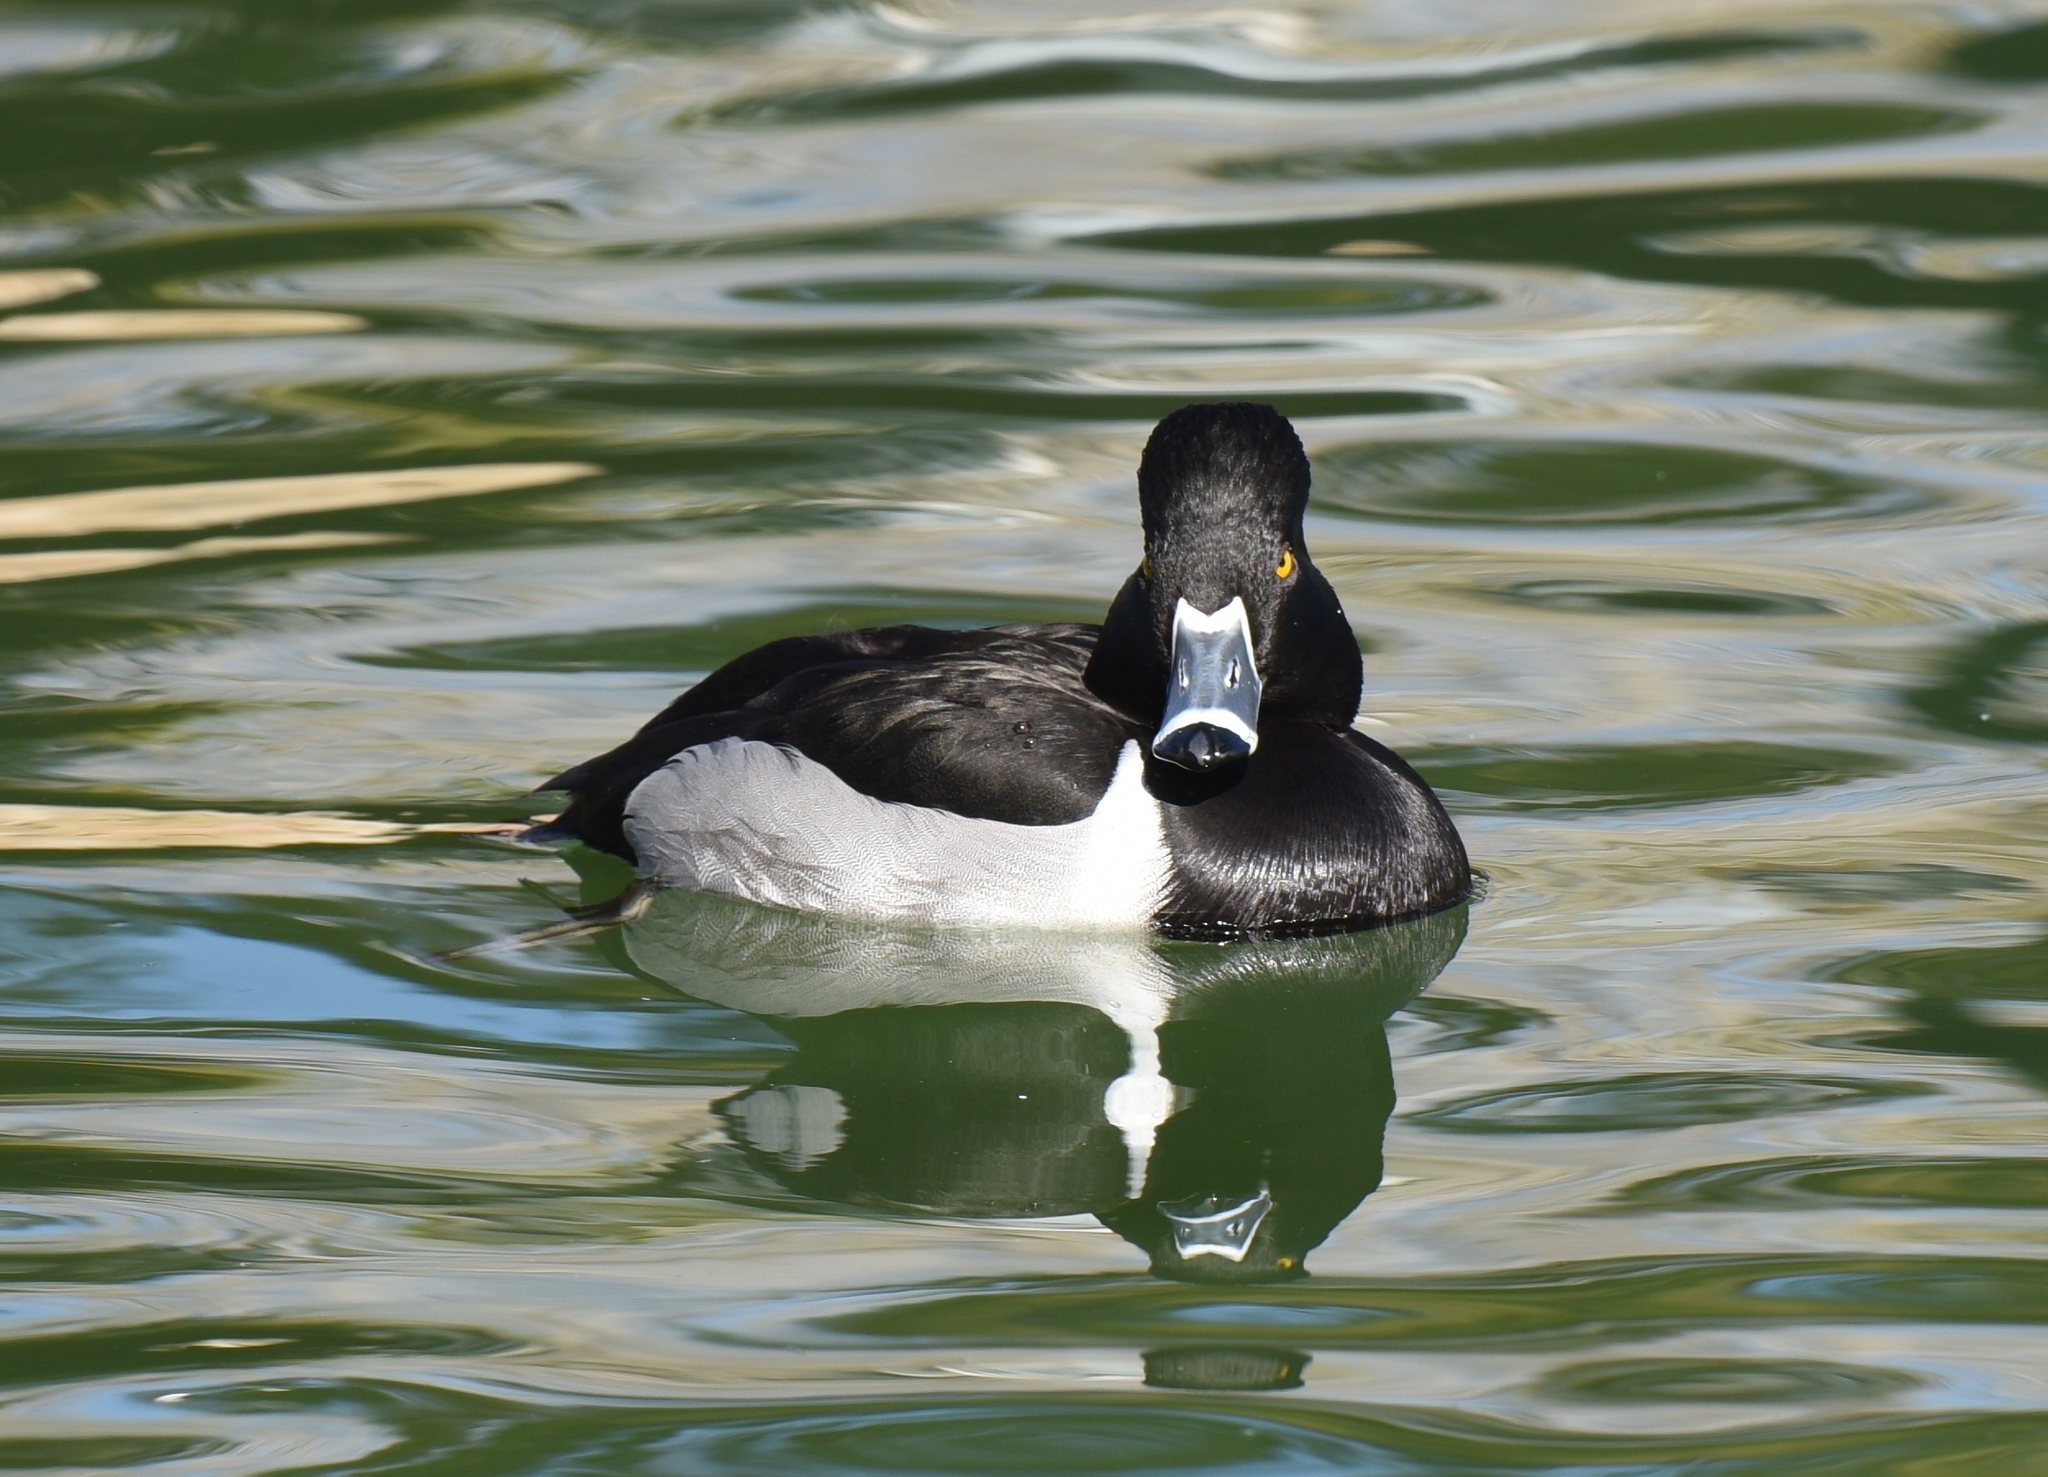 Ring-necked Duck by lonnyholmes CC BY NC